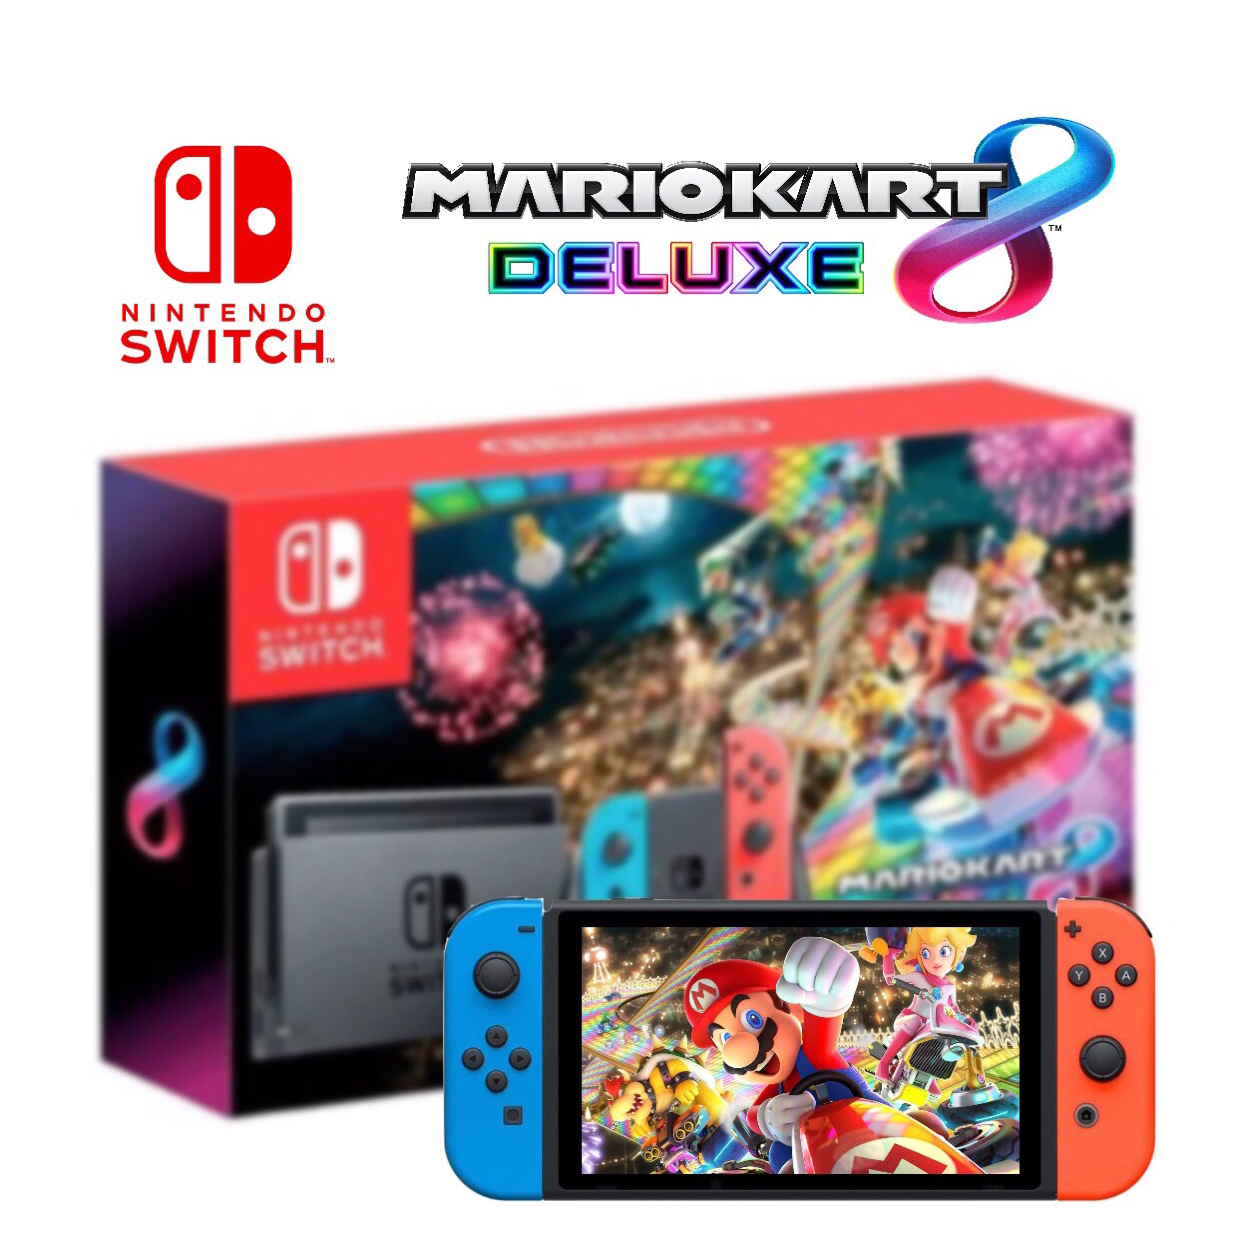 Nintendo Switch with Mario Kart 8 Deluxe Bundle